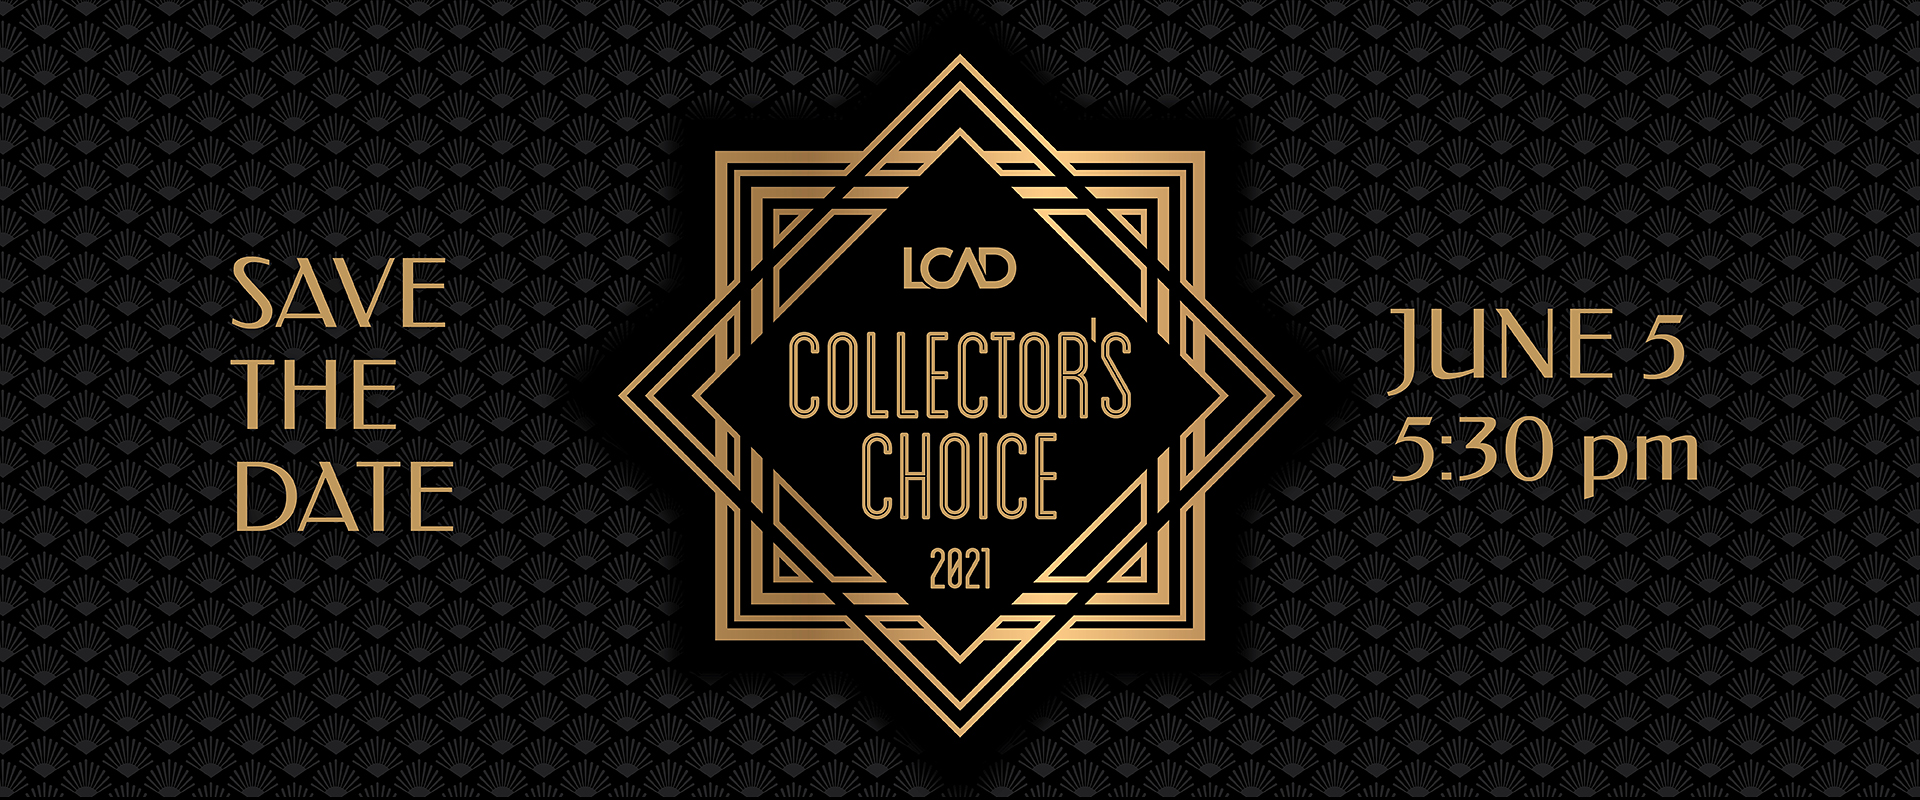 Collectors Choice 2021